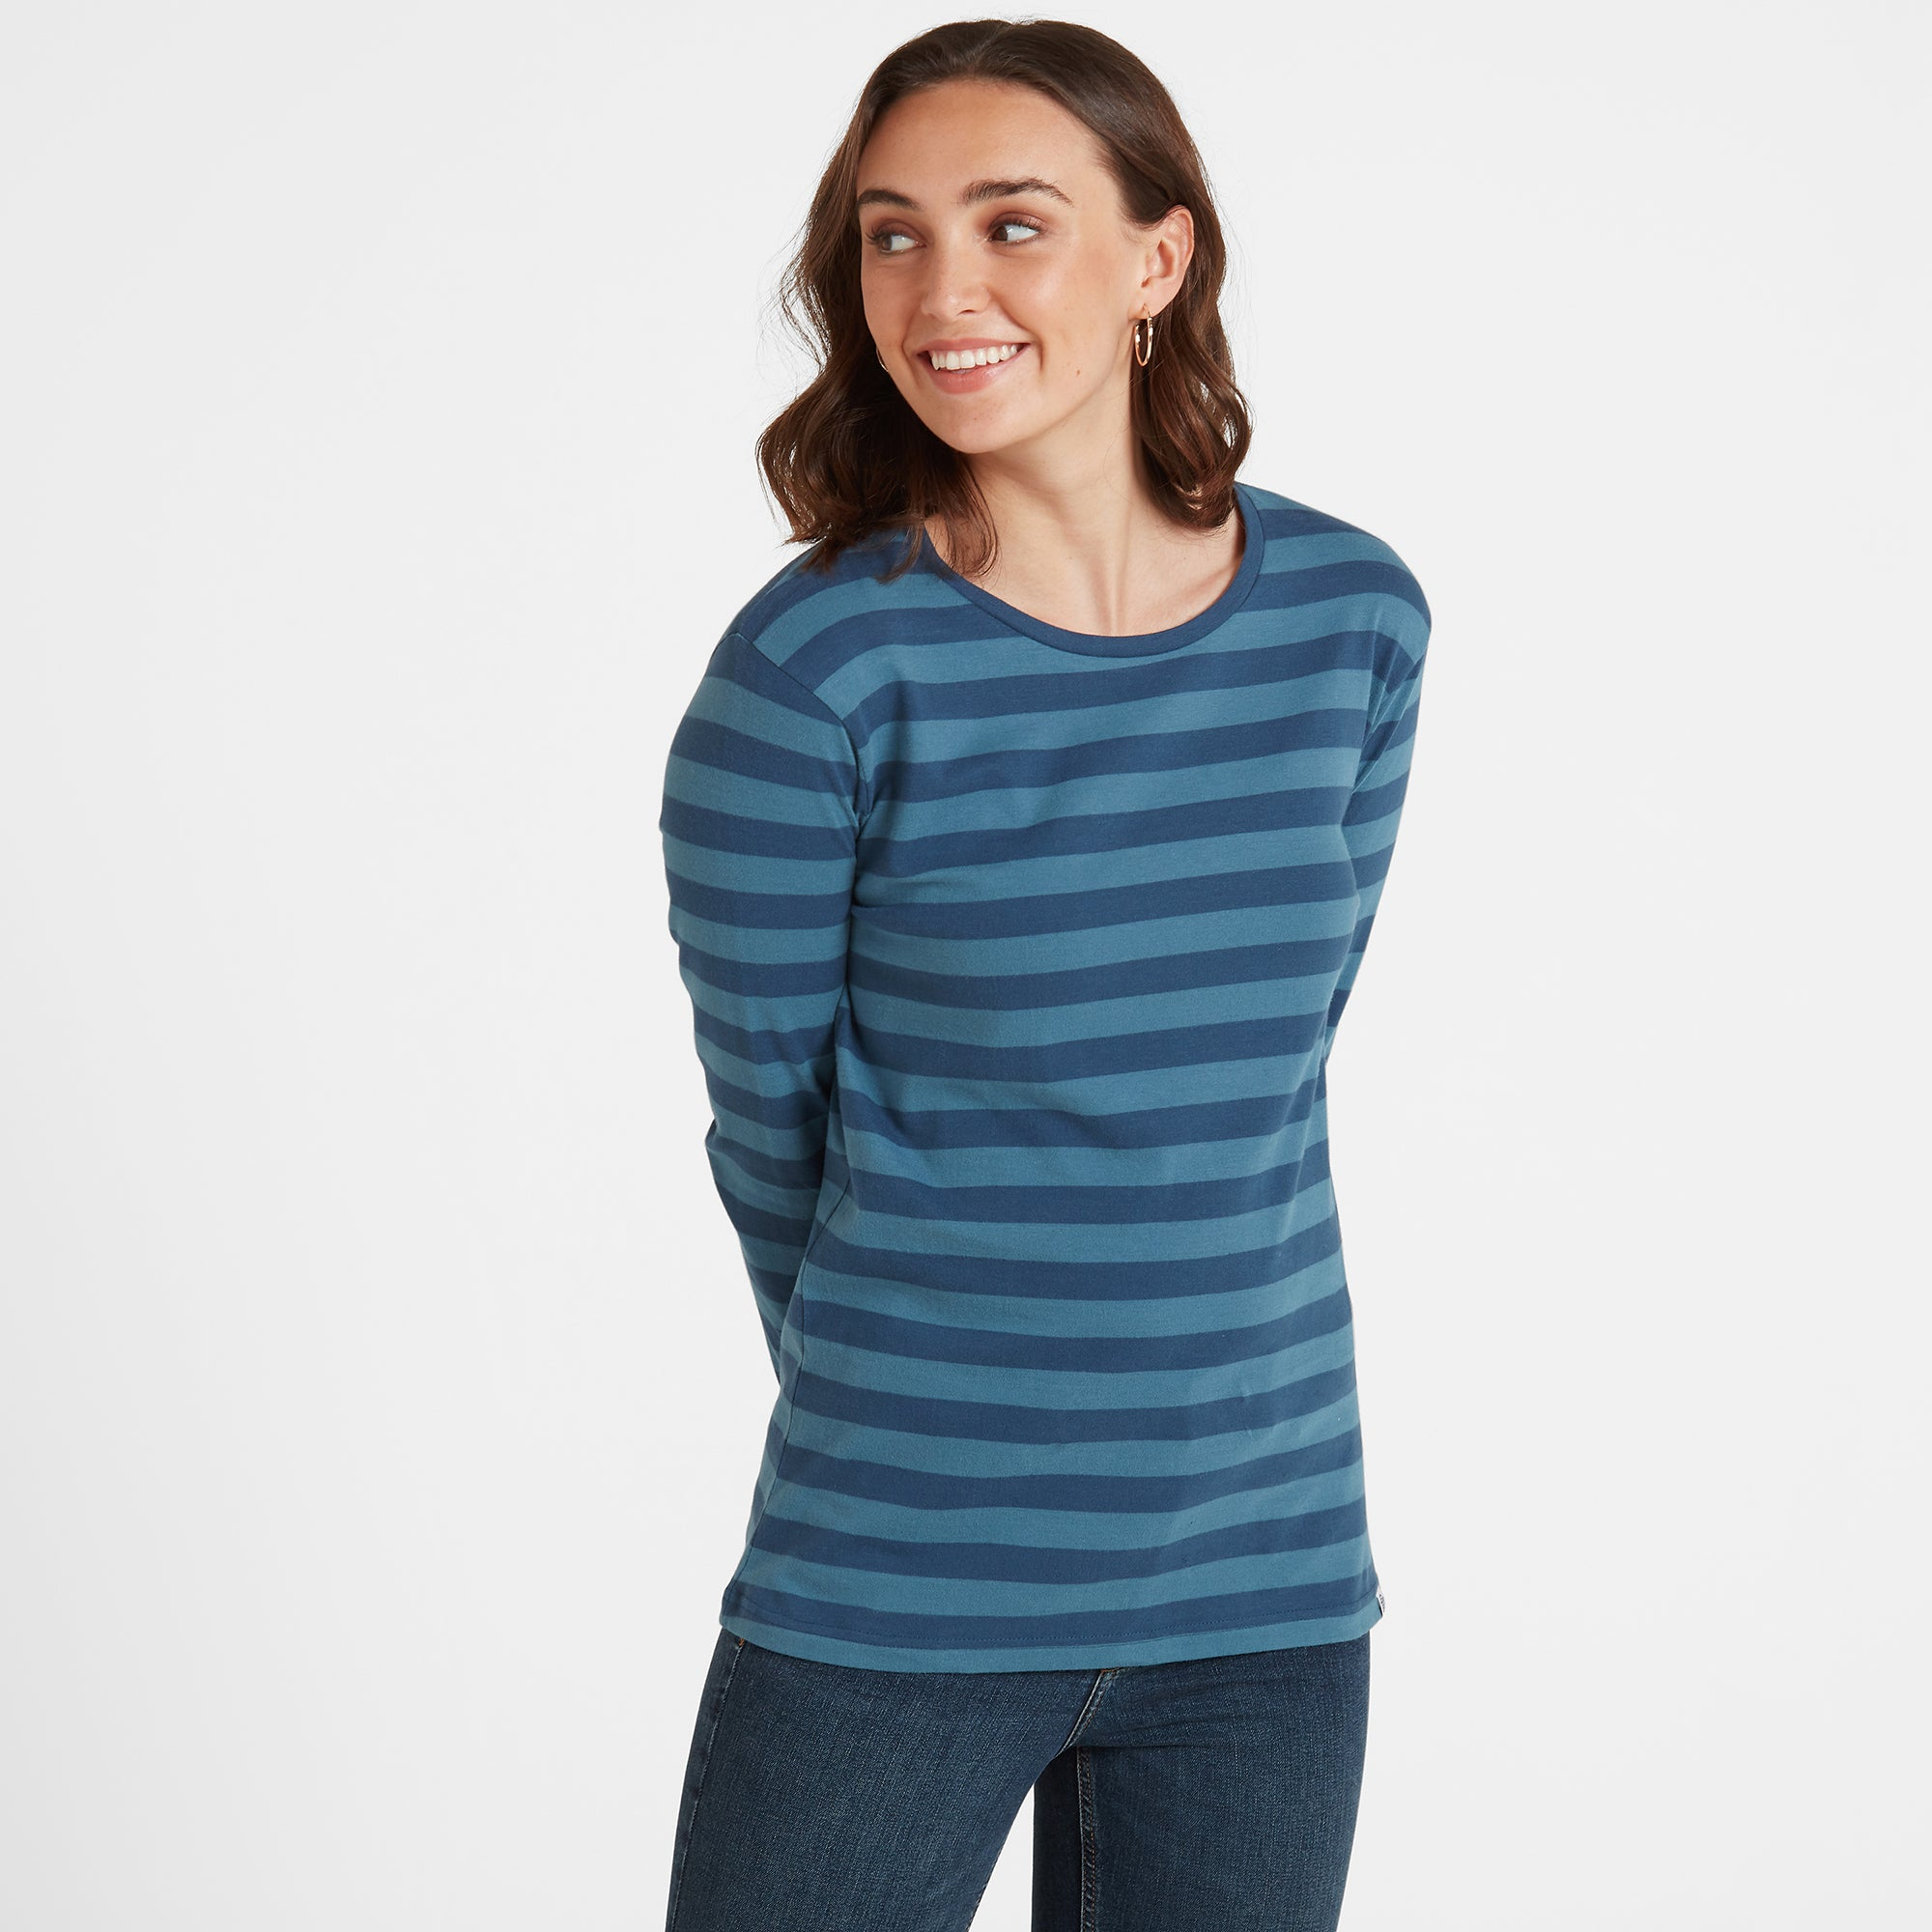 Sandsend Womens Long Sleeve Stripe T-Shirt - Atlantic Blue